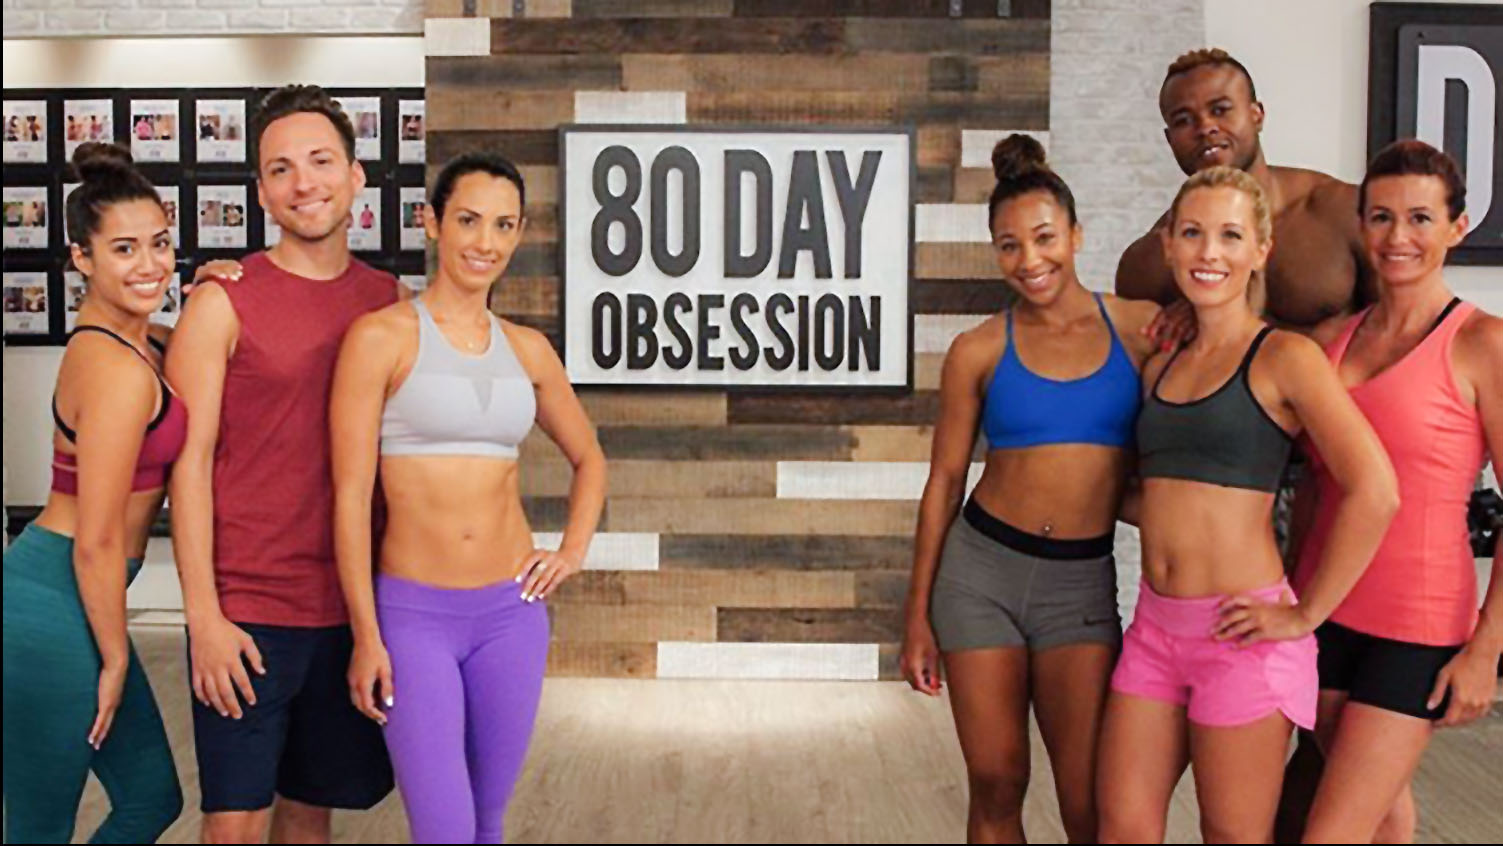 80 Day Obsession ready to get obsessed? learn more about 80 day obsession